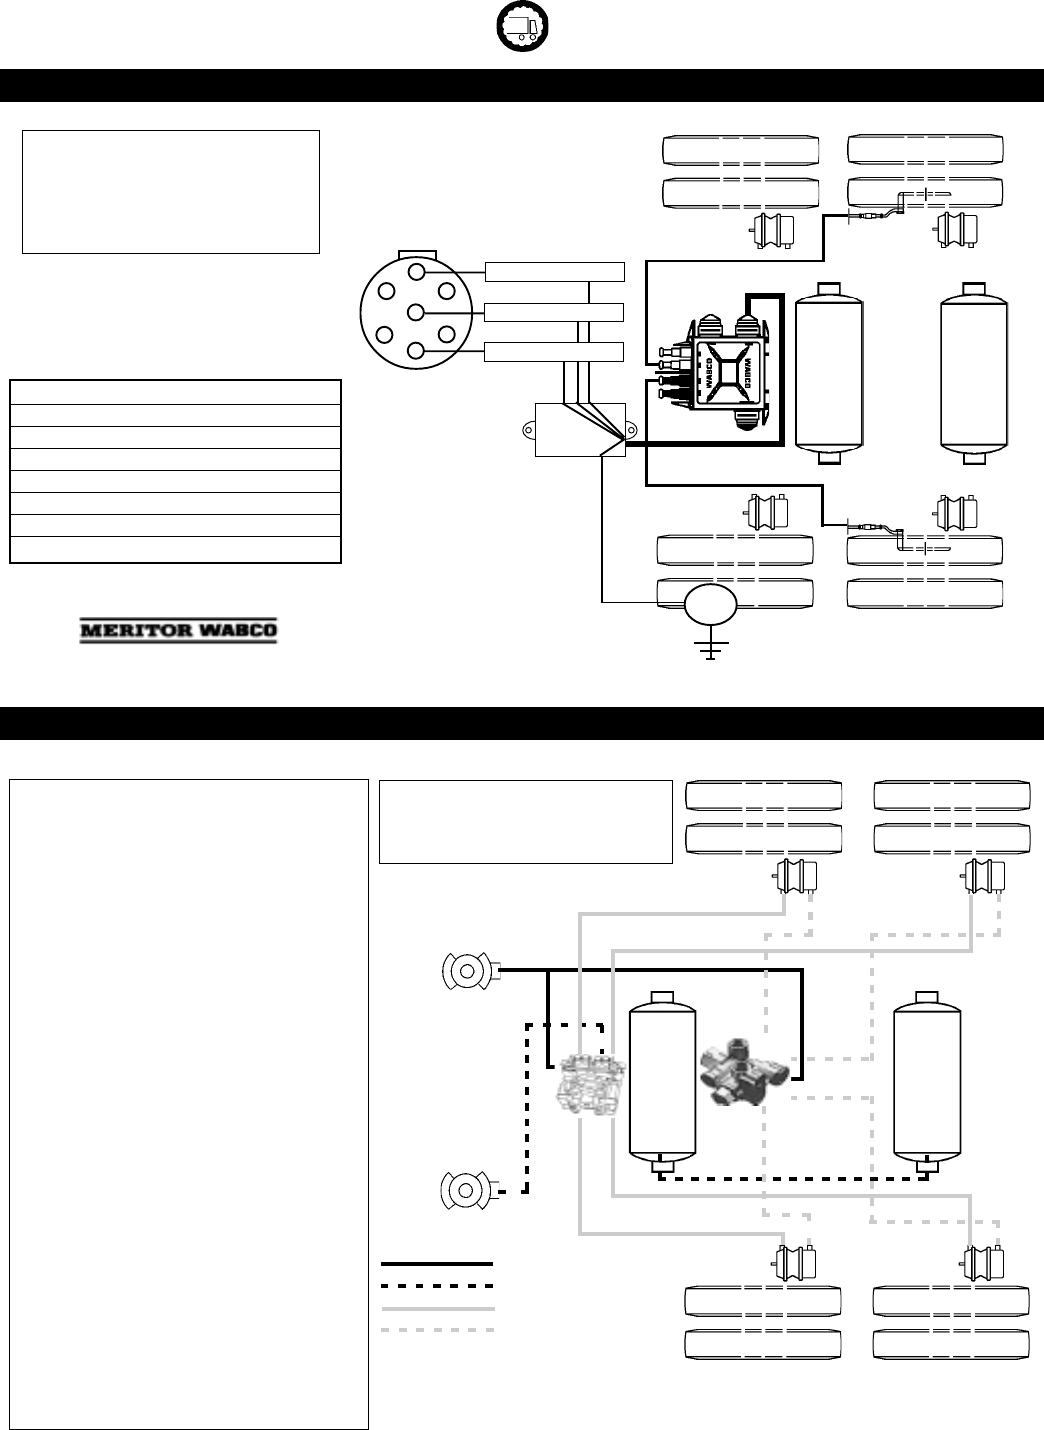 R955320 Meritor Wabco Wiring Diagram Will Be A Thing 2007 Flht Ecu Abs Air Valves Dryers 285252 Section1 Rh Usermanual Wiki Parts Haldex